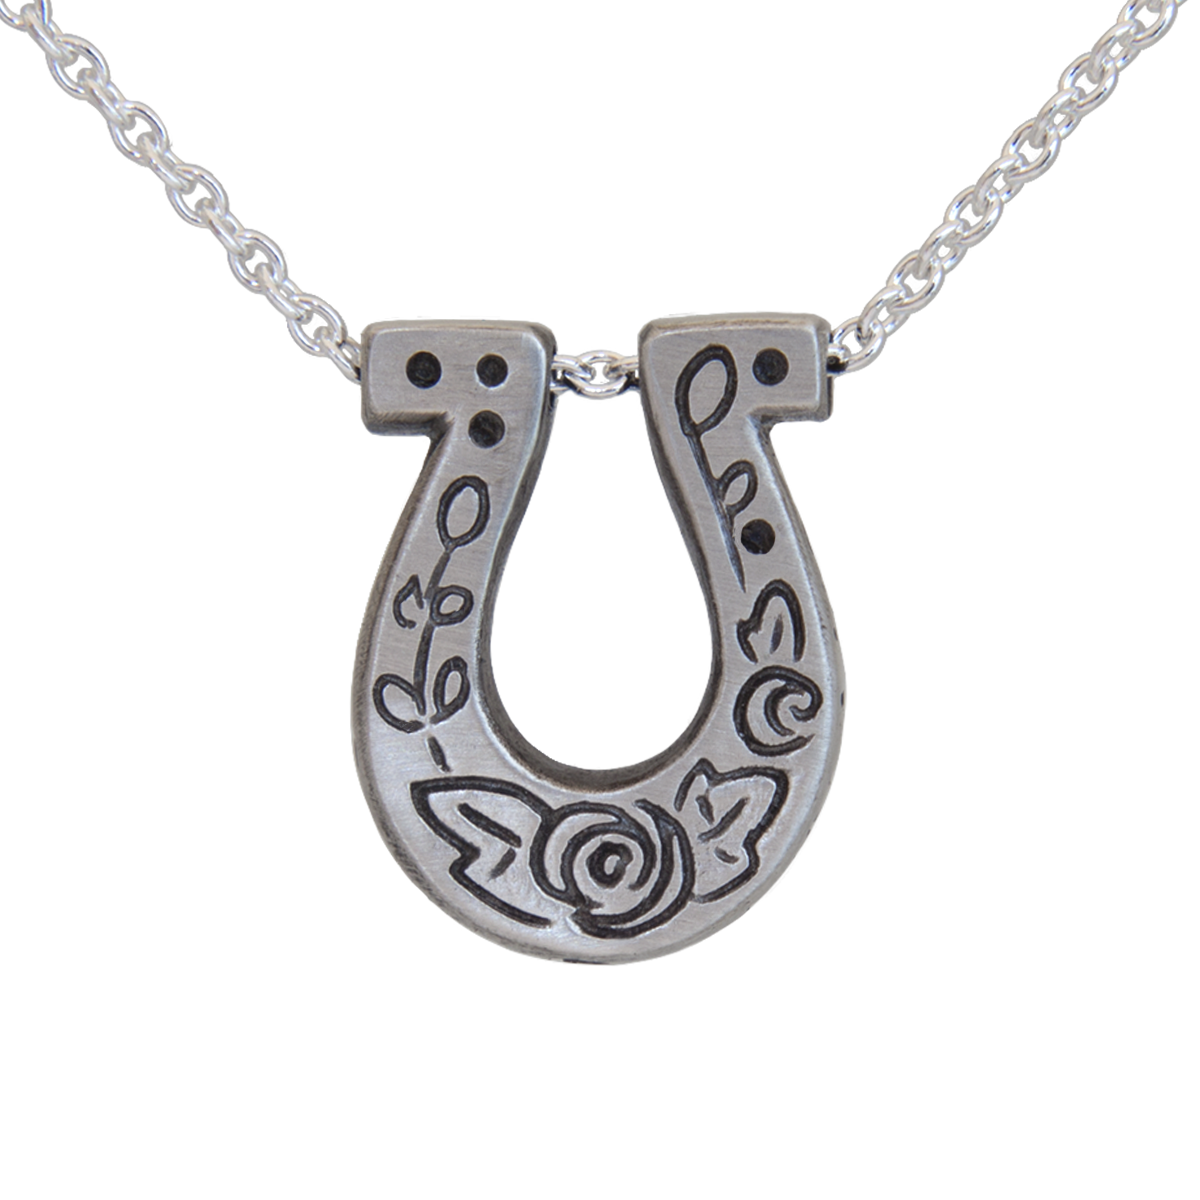 Mini luck horseshoe pendant melissa scoppa mini luck horseshoe pendant melissa scoppa jewelry mozeypictures Gallery